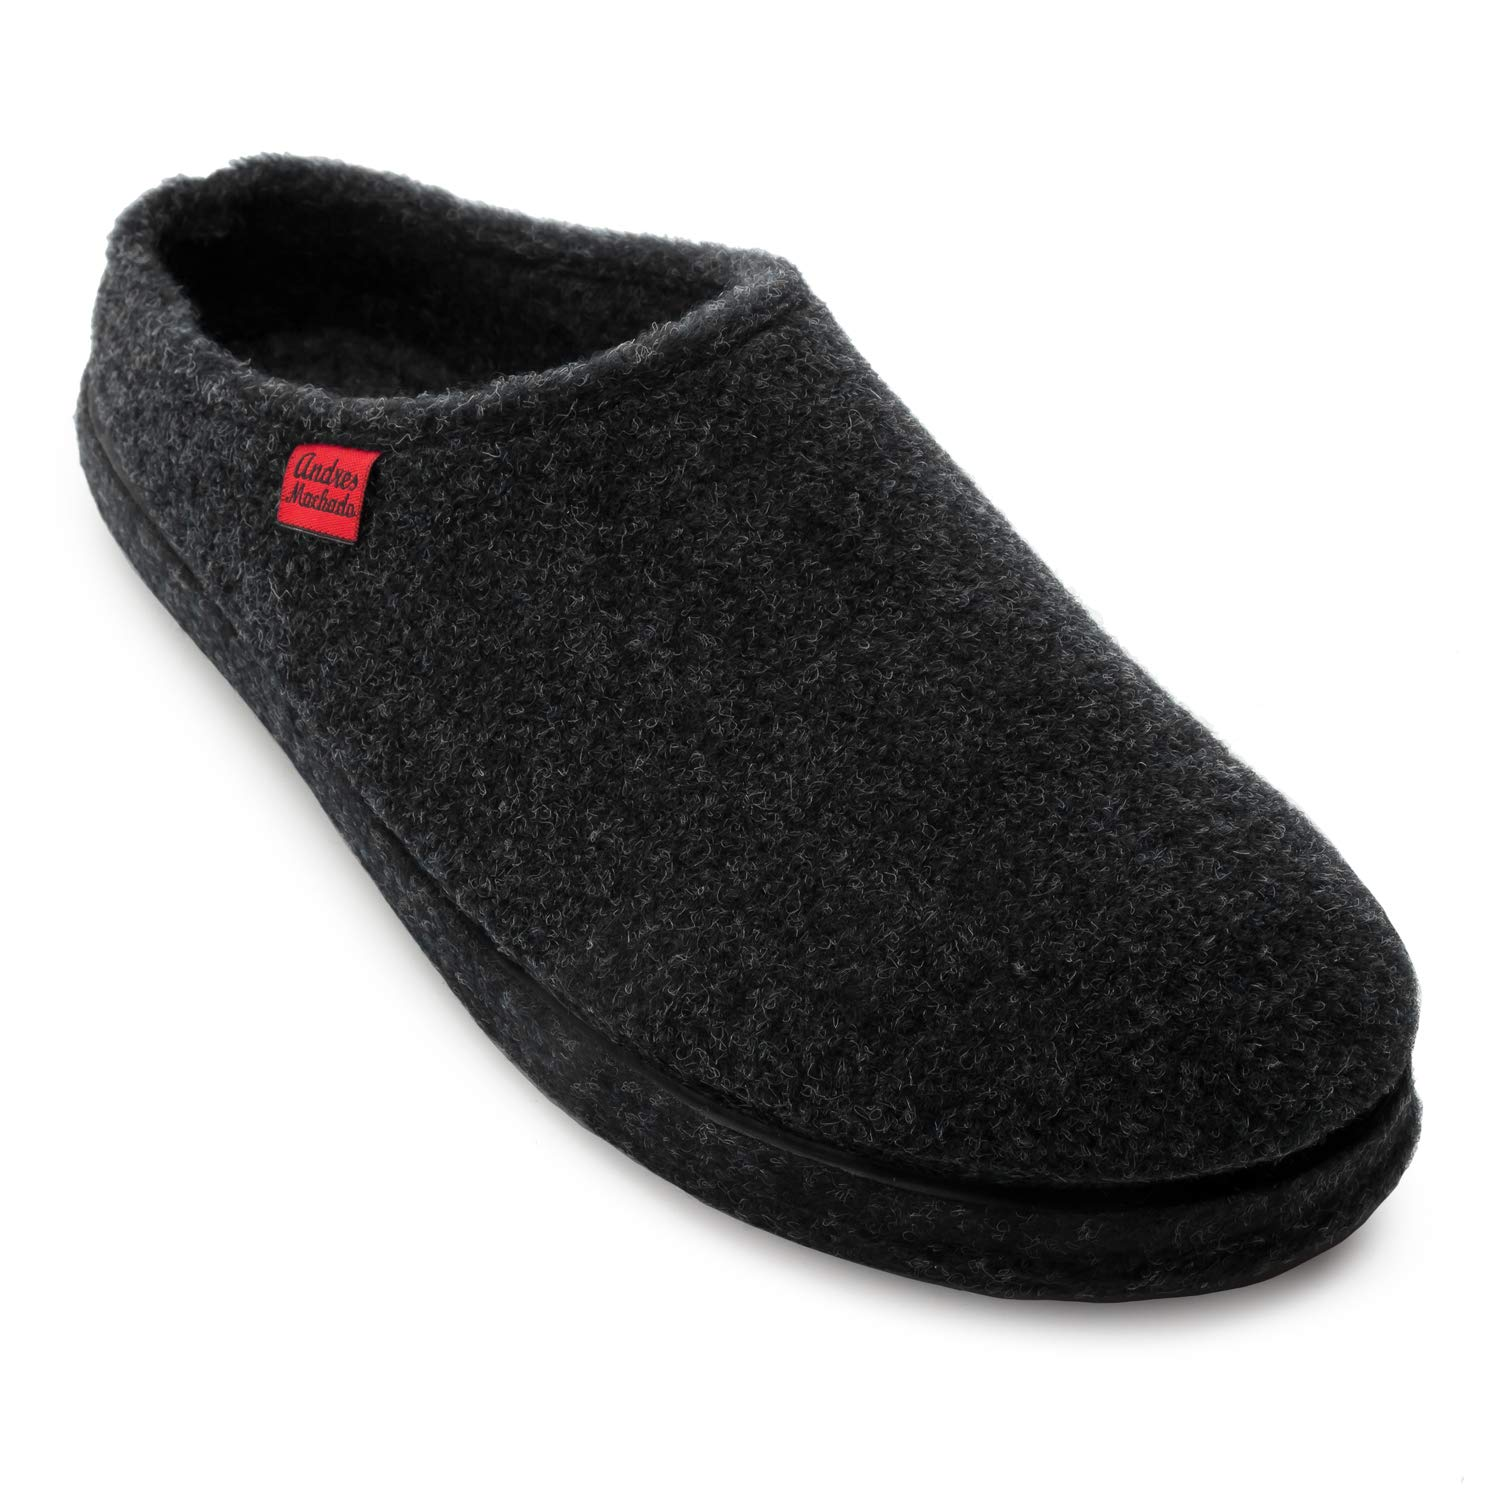 4f88ffc9ec29a8 Andres Machado AM001 Comfortable Felt Slippers with Footbed Made in Spain  Unisex - Small, Medium & Big Sizes: UK 0.5 to 14 / EU 32 to 50.